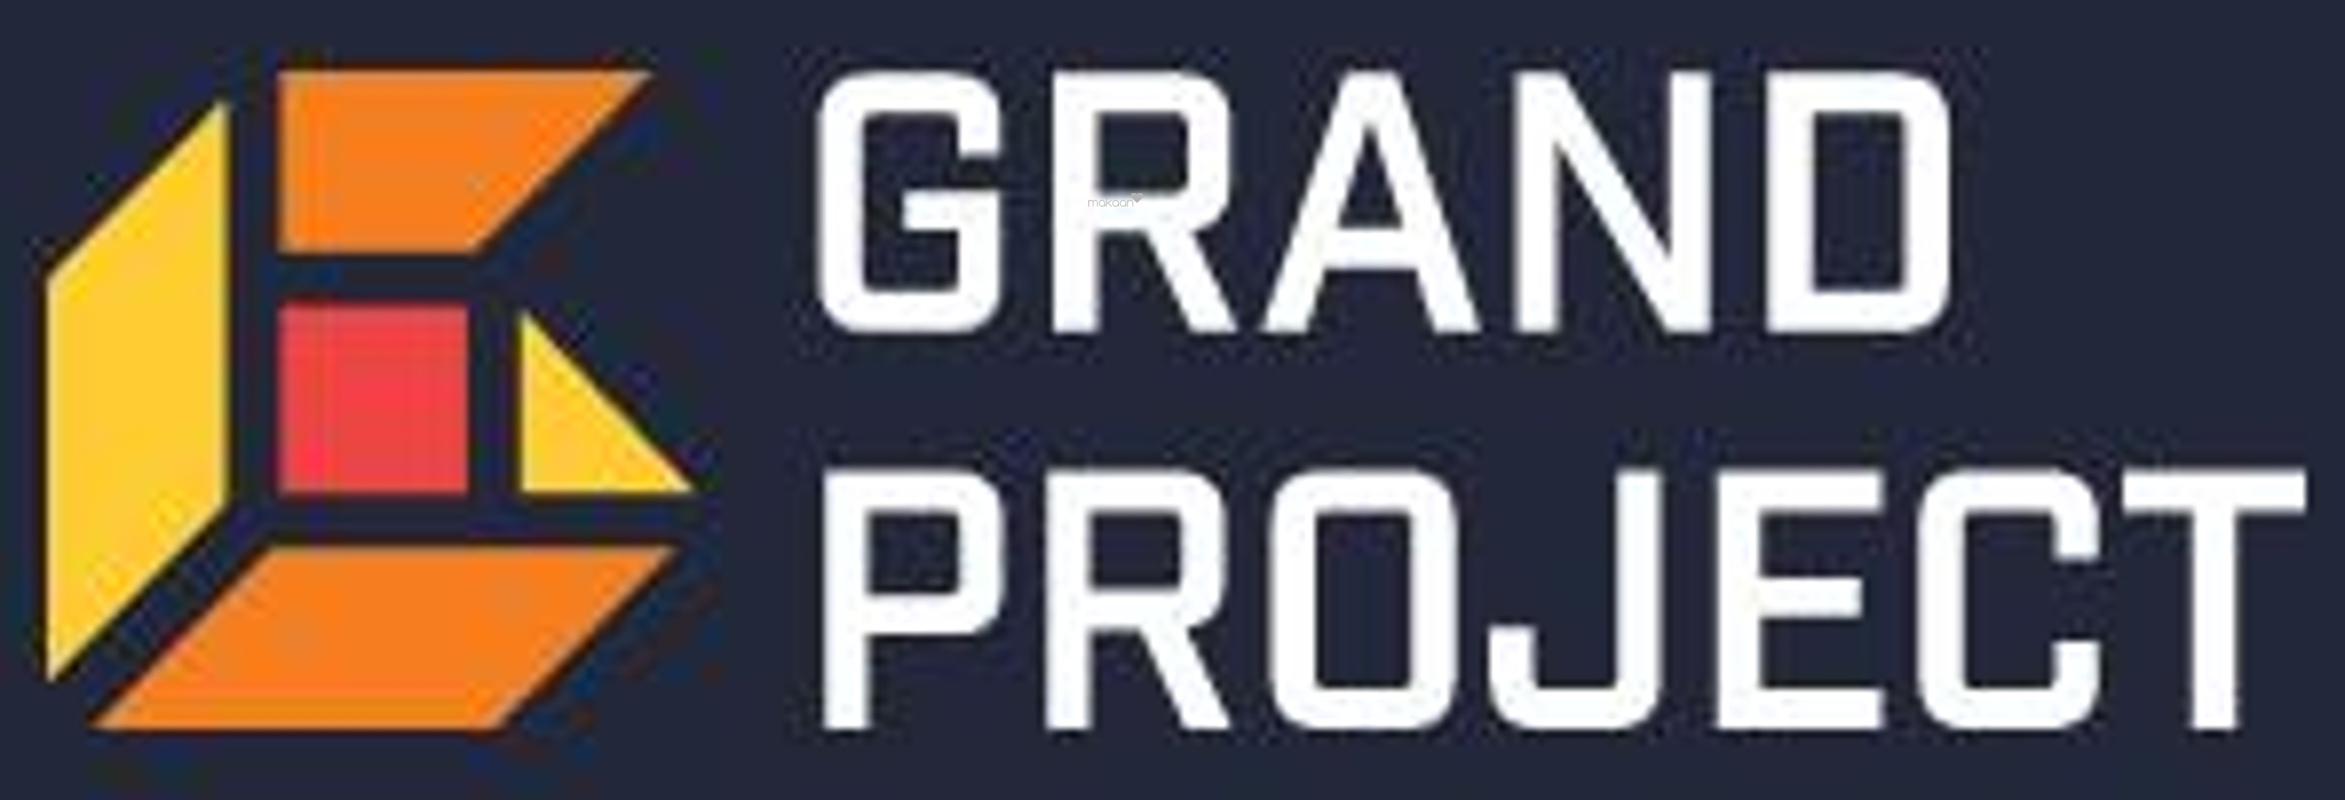 Grand Project projects